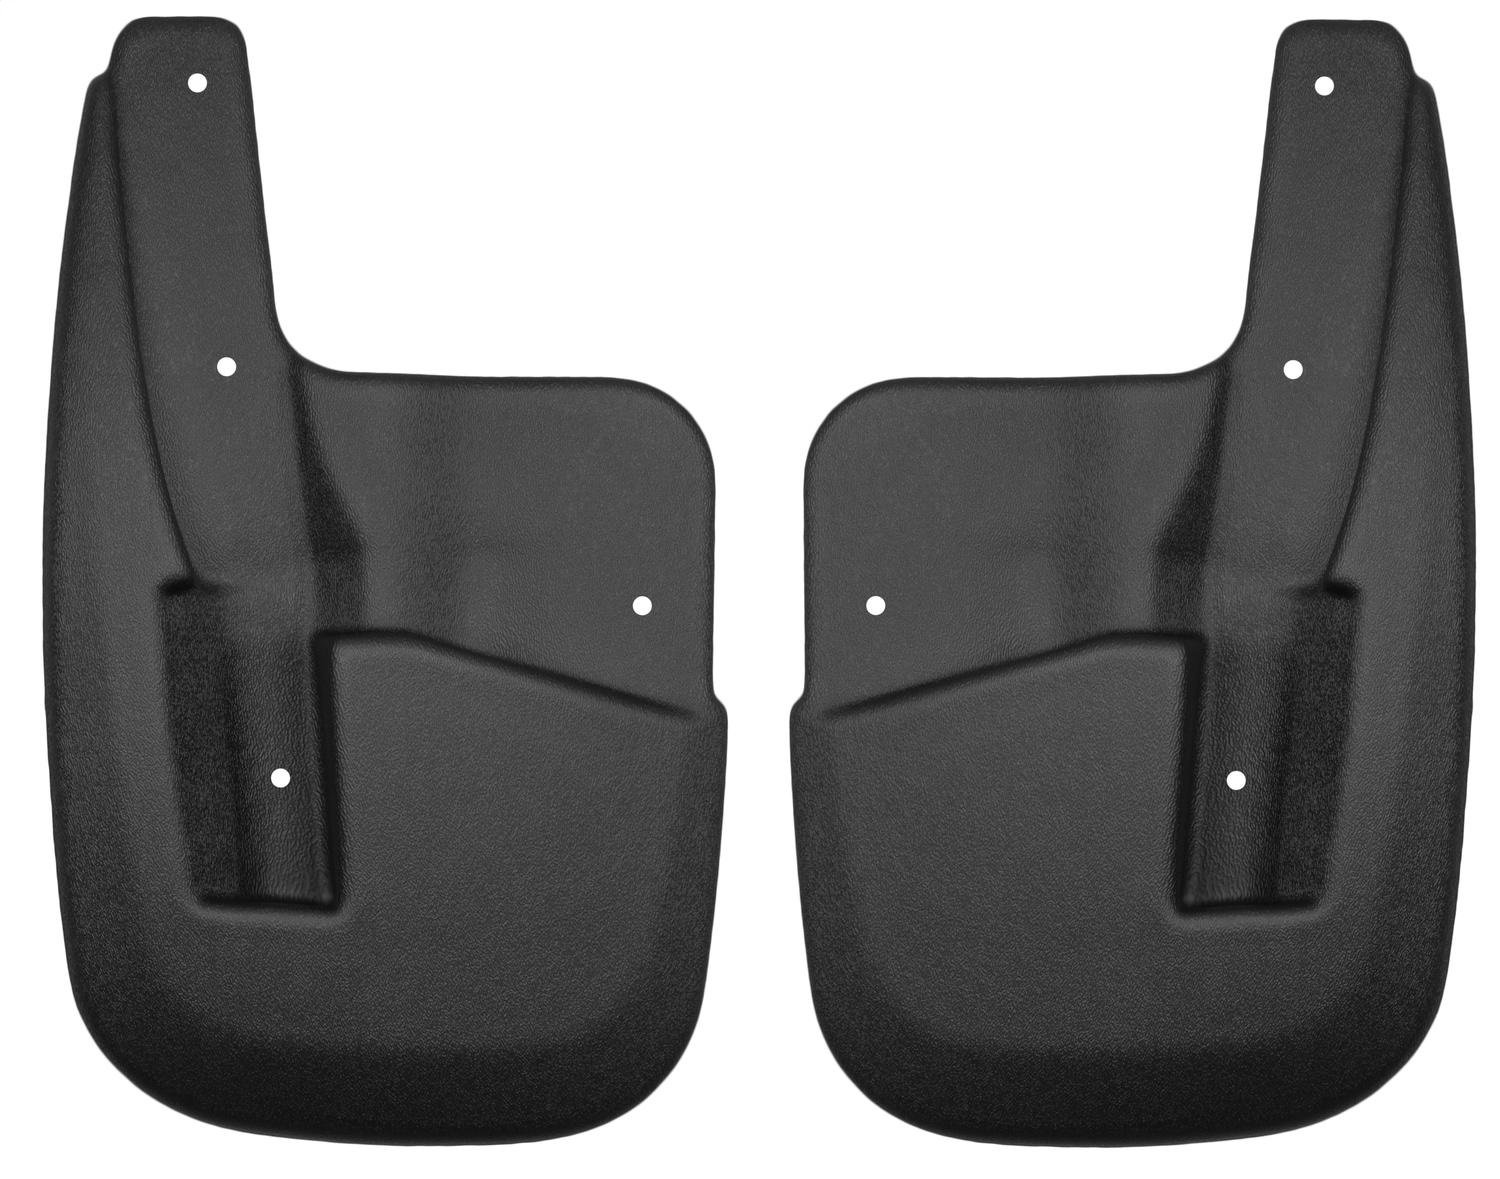 Husky Liners Front Mud Guards Fits 07-17 Expedition XLT w//o power running boards